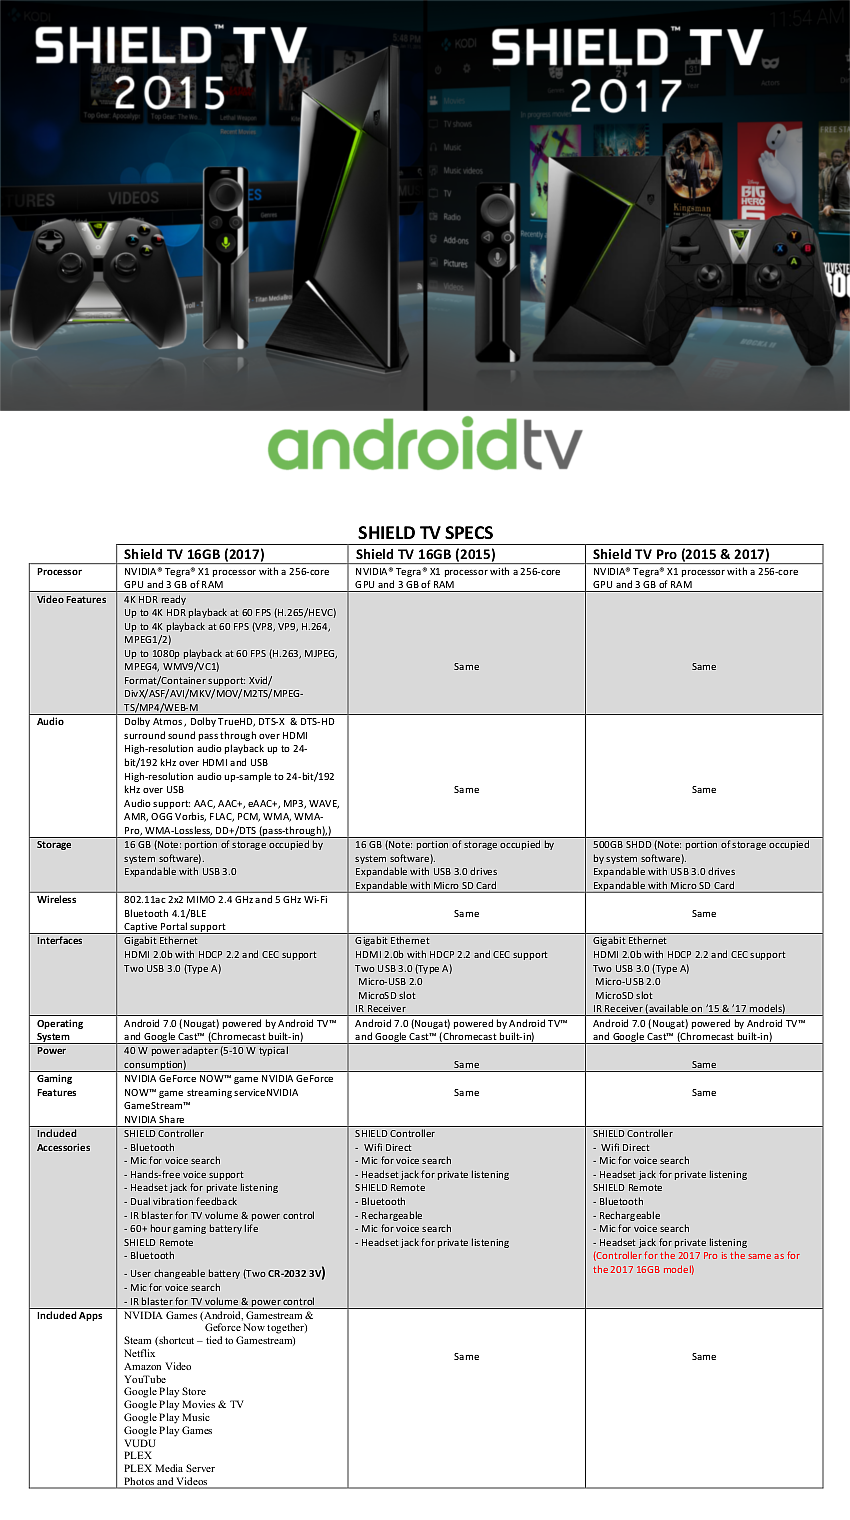 Nvidia Shield Android TV (Updated Jan 26 2017 - 5 0 update)